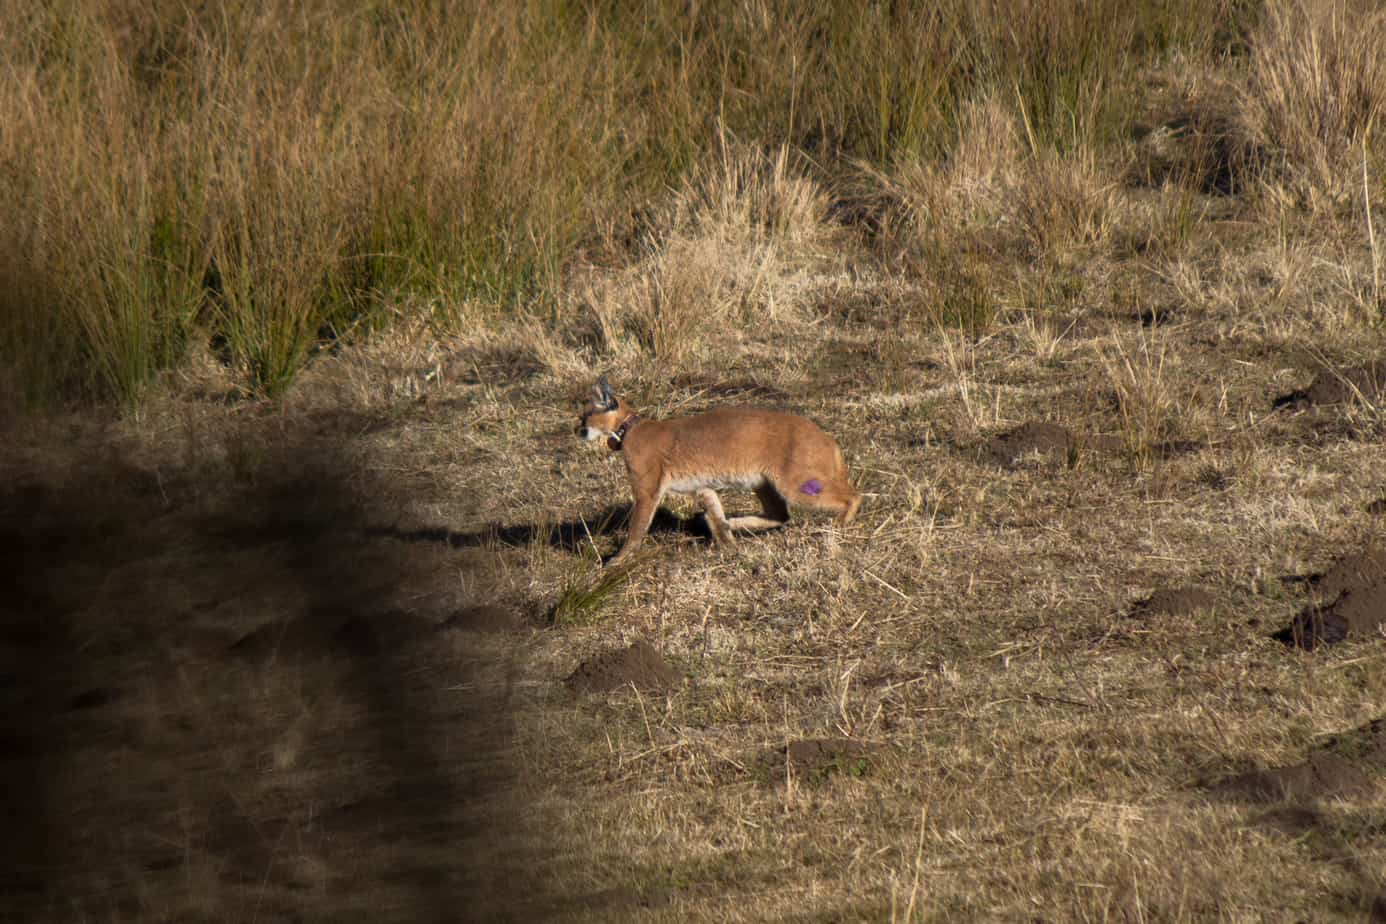 IMG 9909 - Servals & Caracals, Oh My!